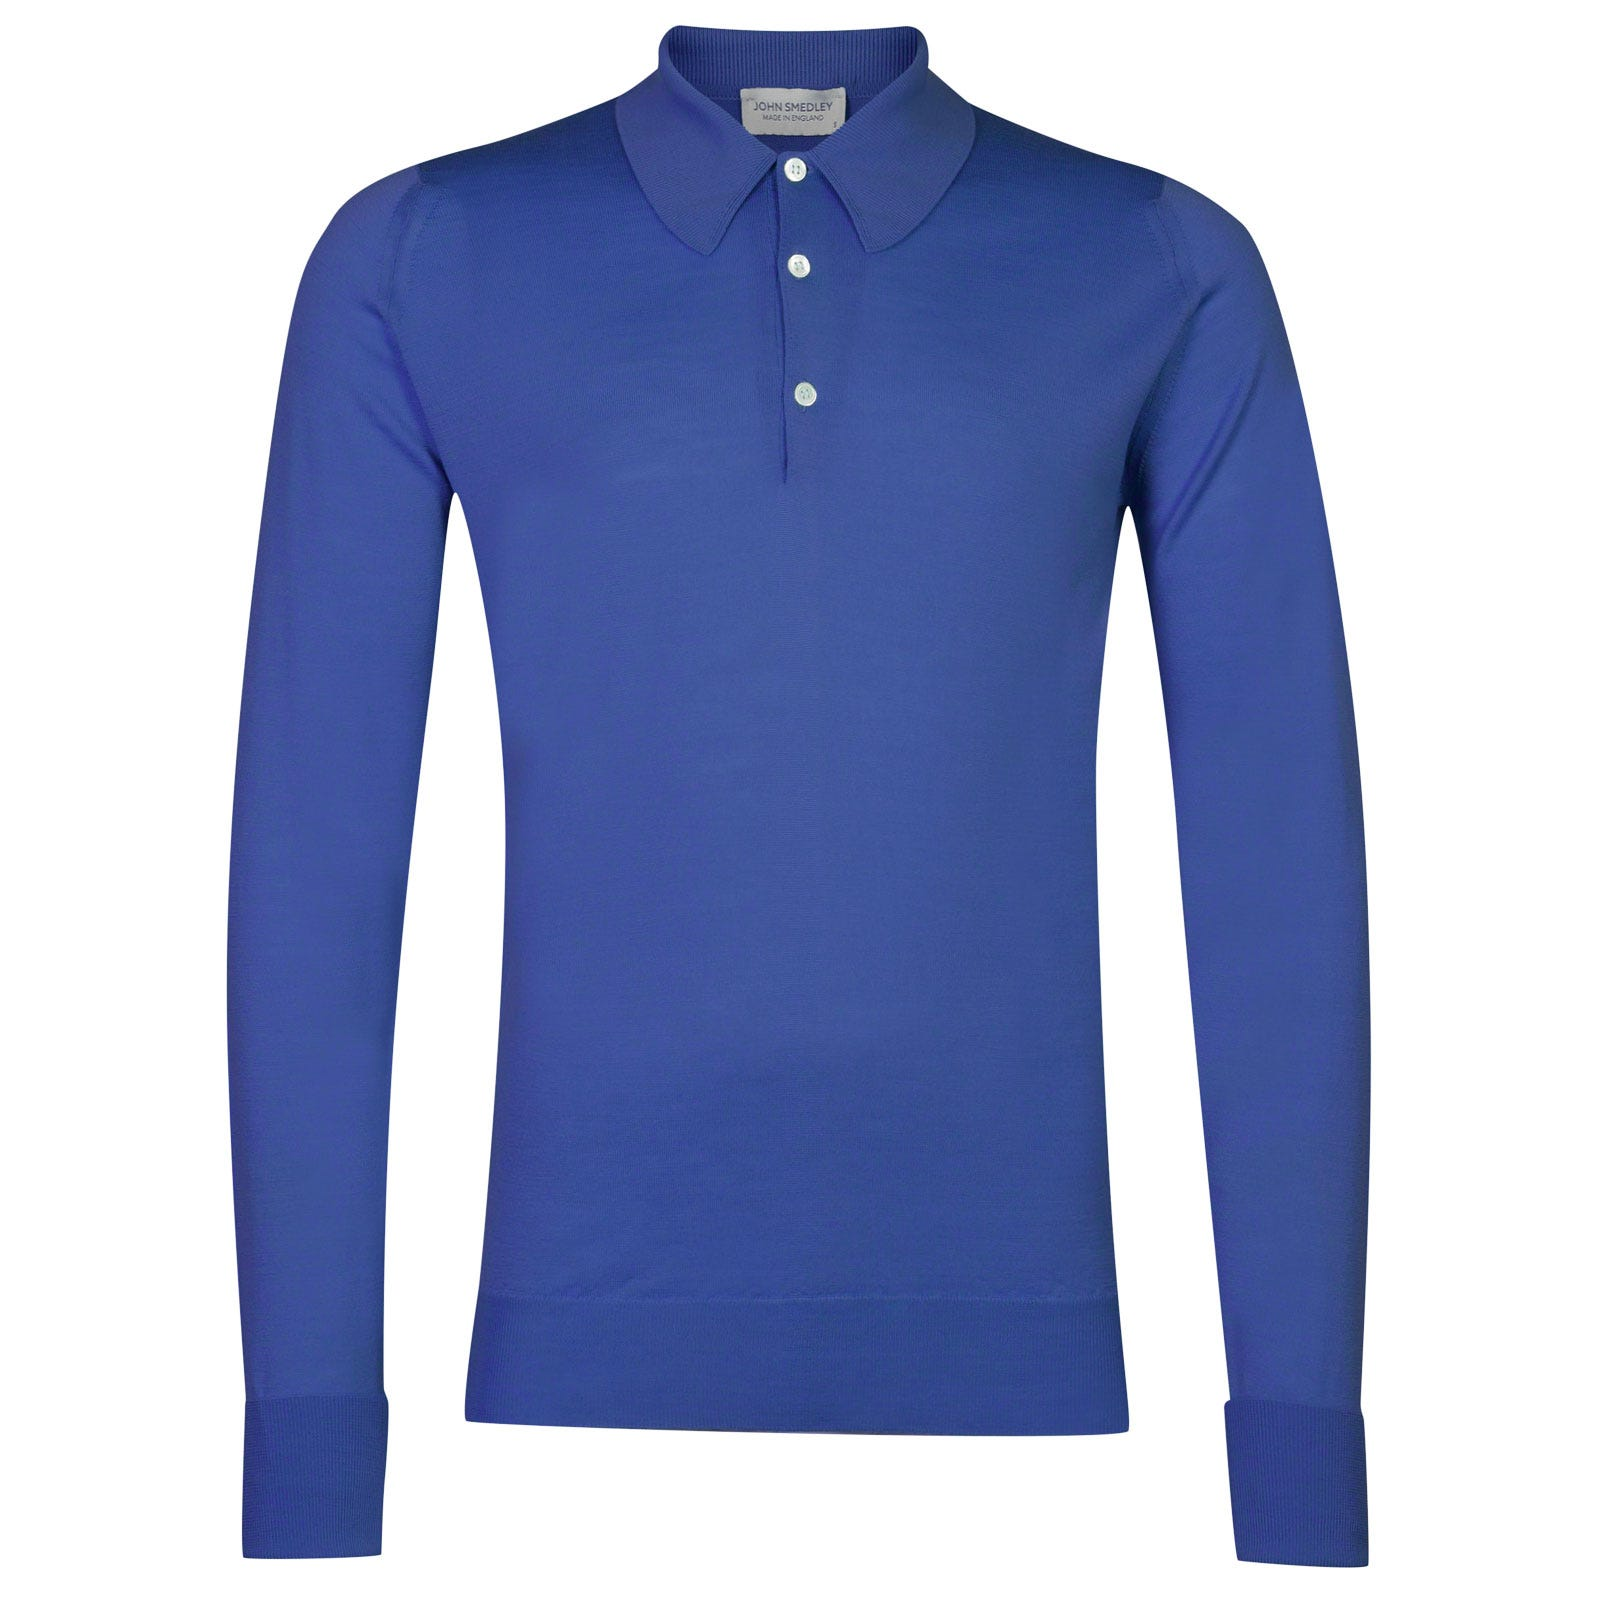 John Smedley dorset Merino Wool Shirt in Chambray Blue-L